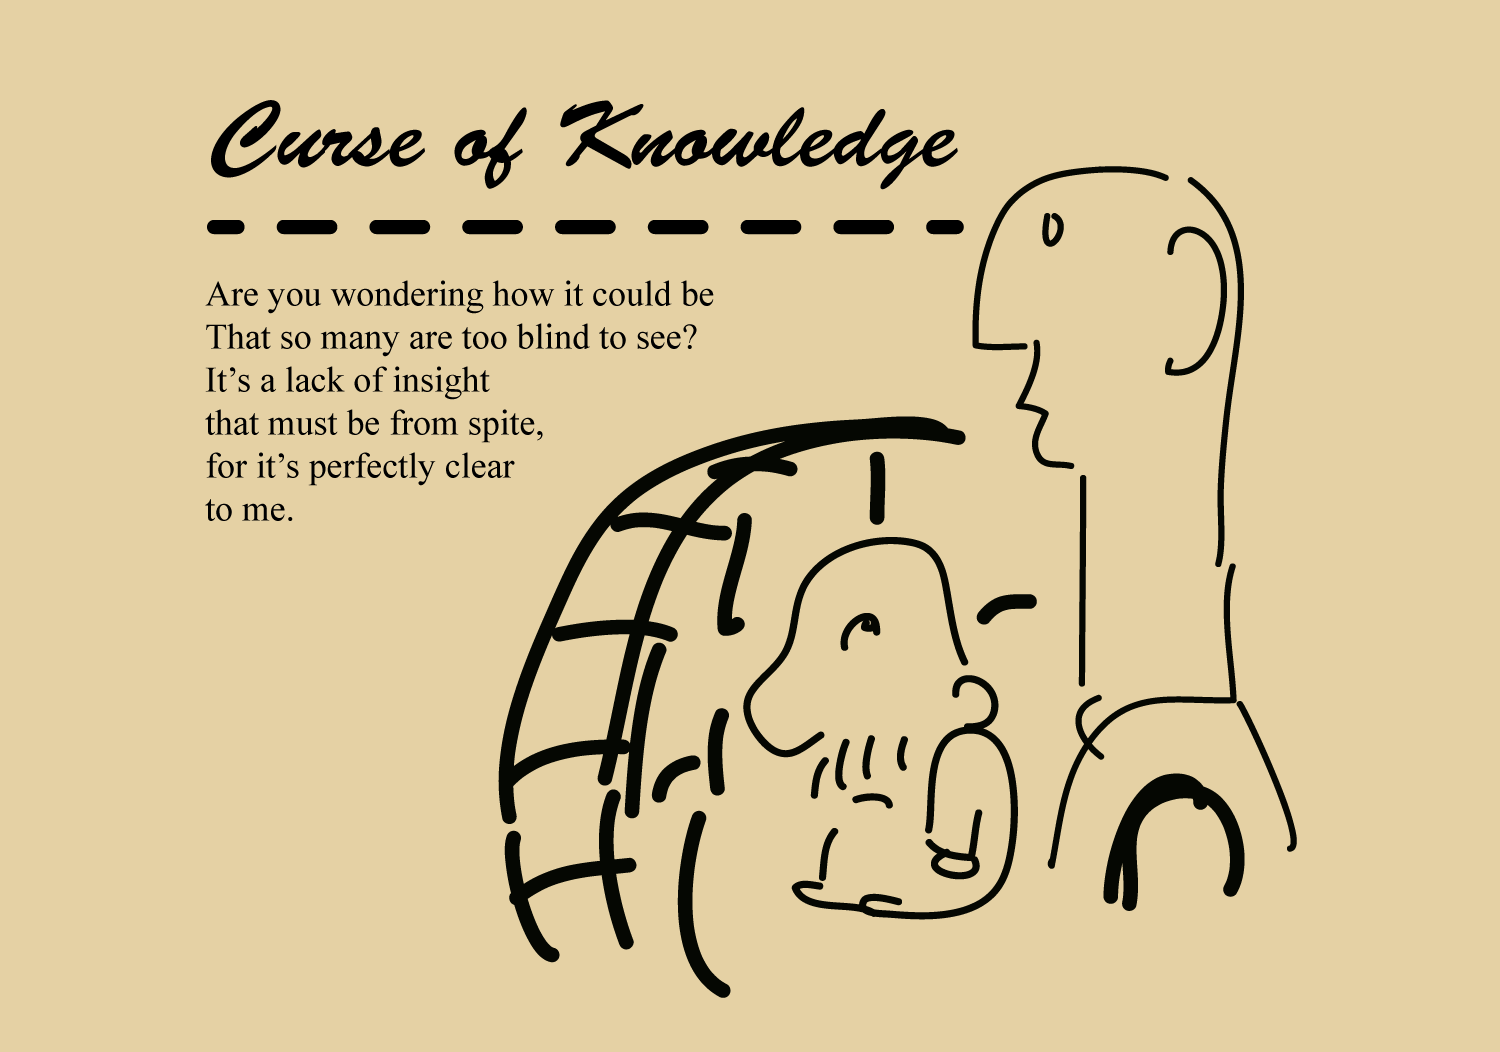 Curse of Knowledge - Cognitive Bias Parade - by Jim Gill